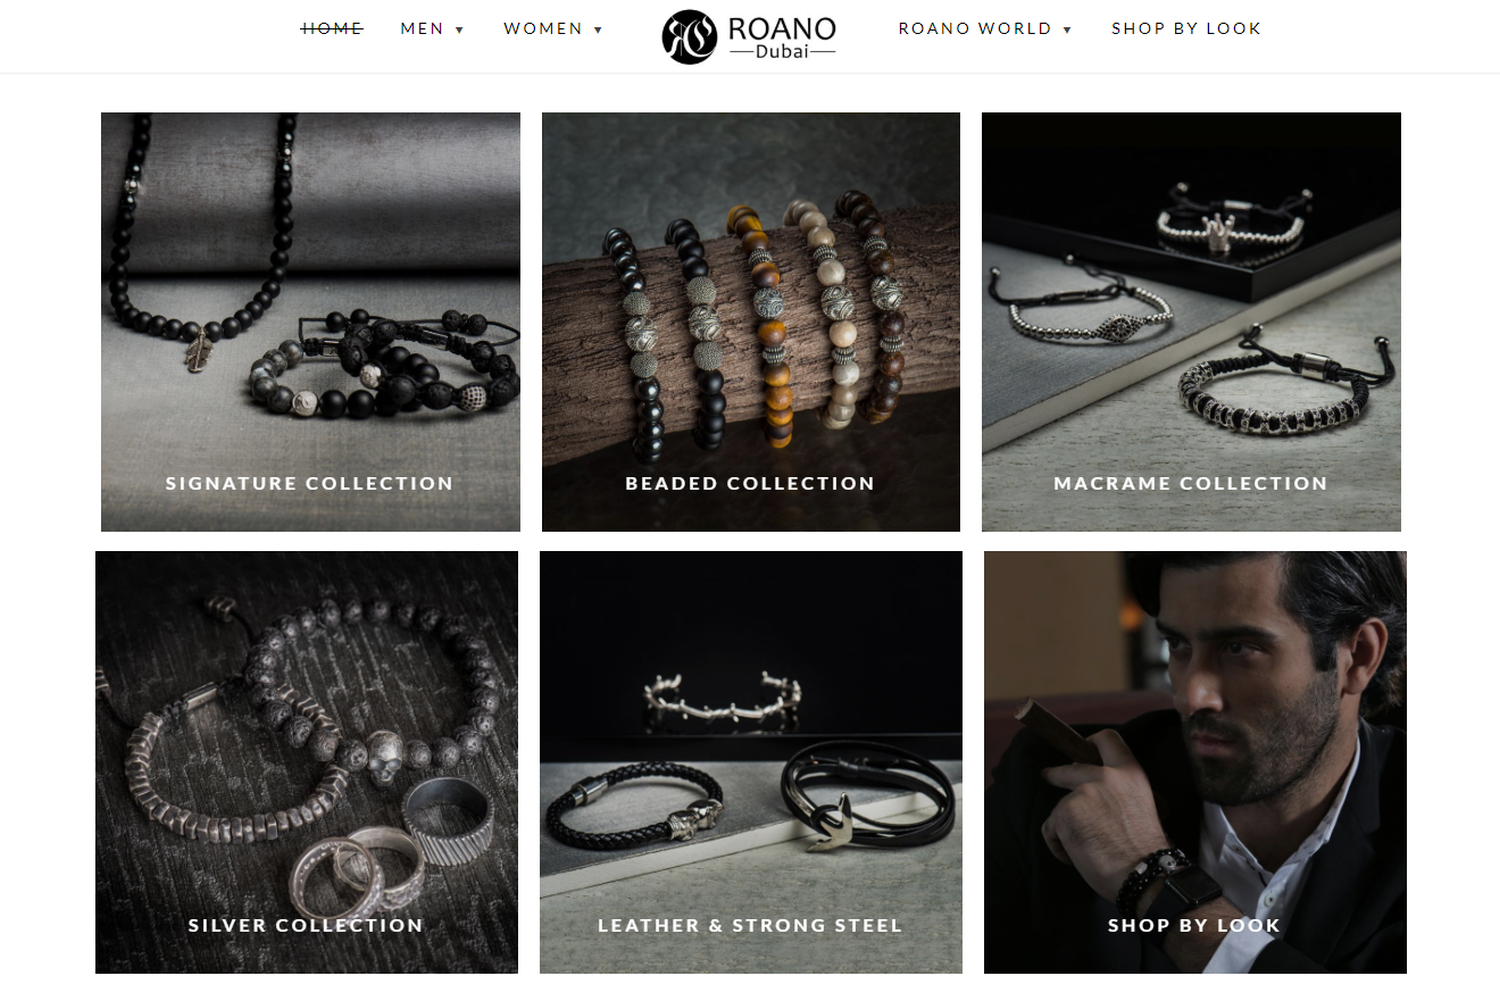 Roano homepage section